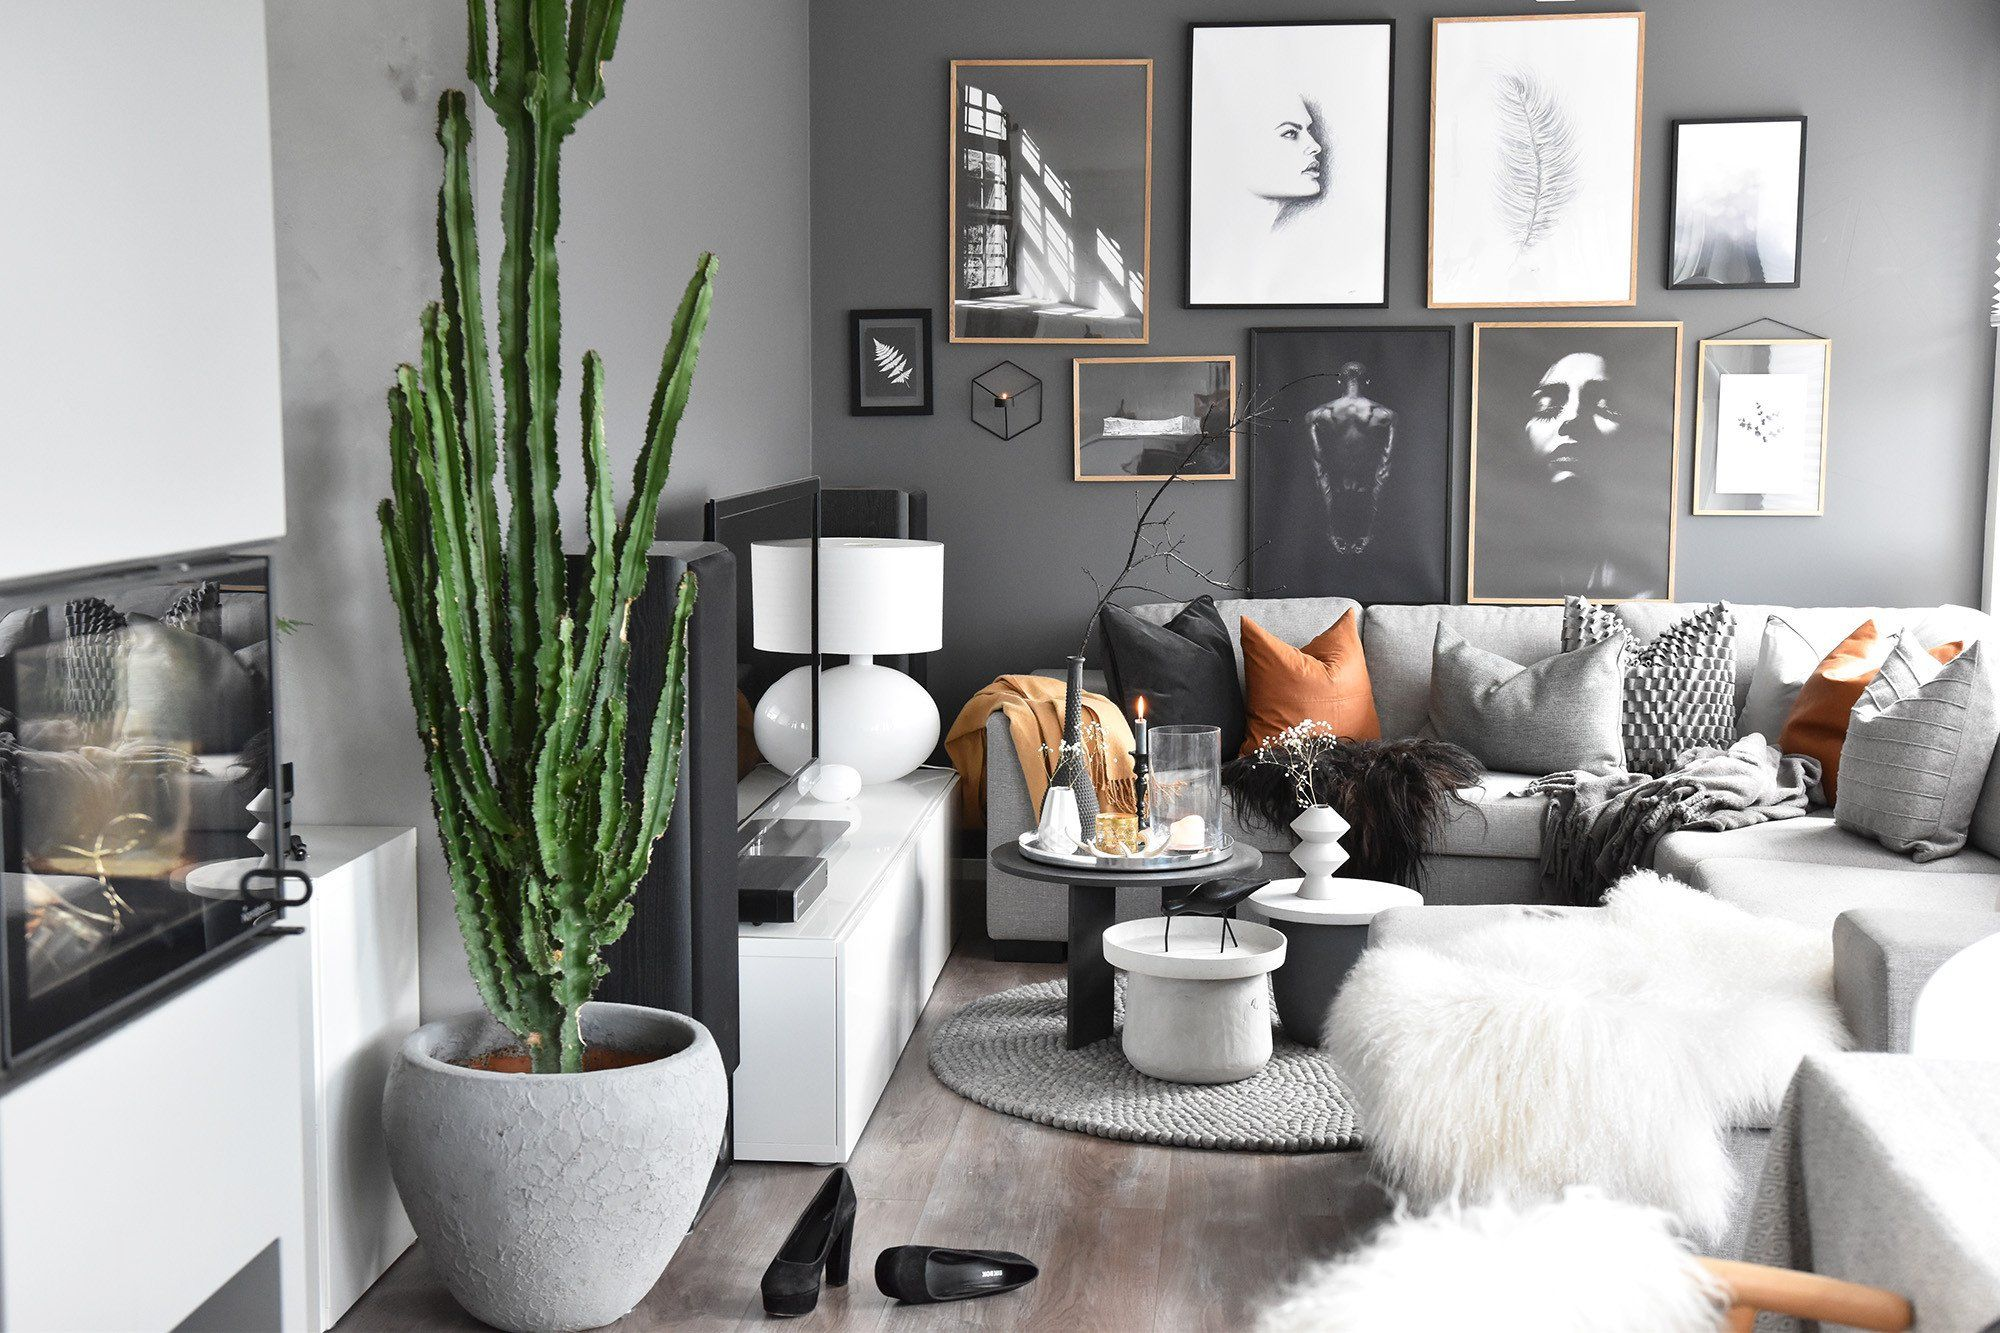 Latest Trends In Home Decor Inspirational 10 Fall Trends The Season S Latest Ideas Decoholic Home Decor Catalogs Trending Decor Fall Home Decor